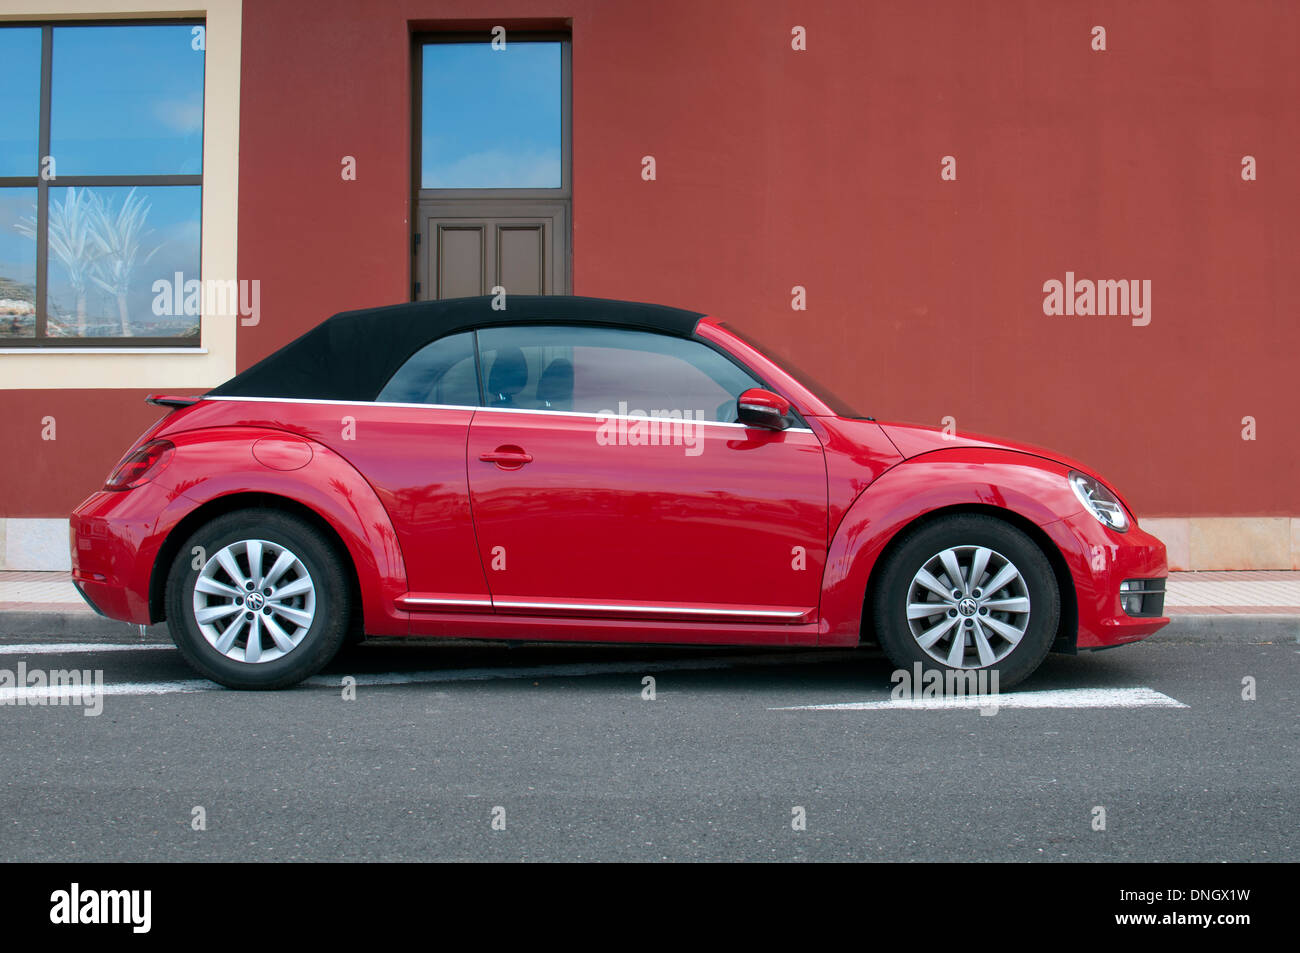 Red Vw Beetle High Resolution Stock Photography And Images Alamy